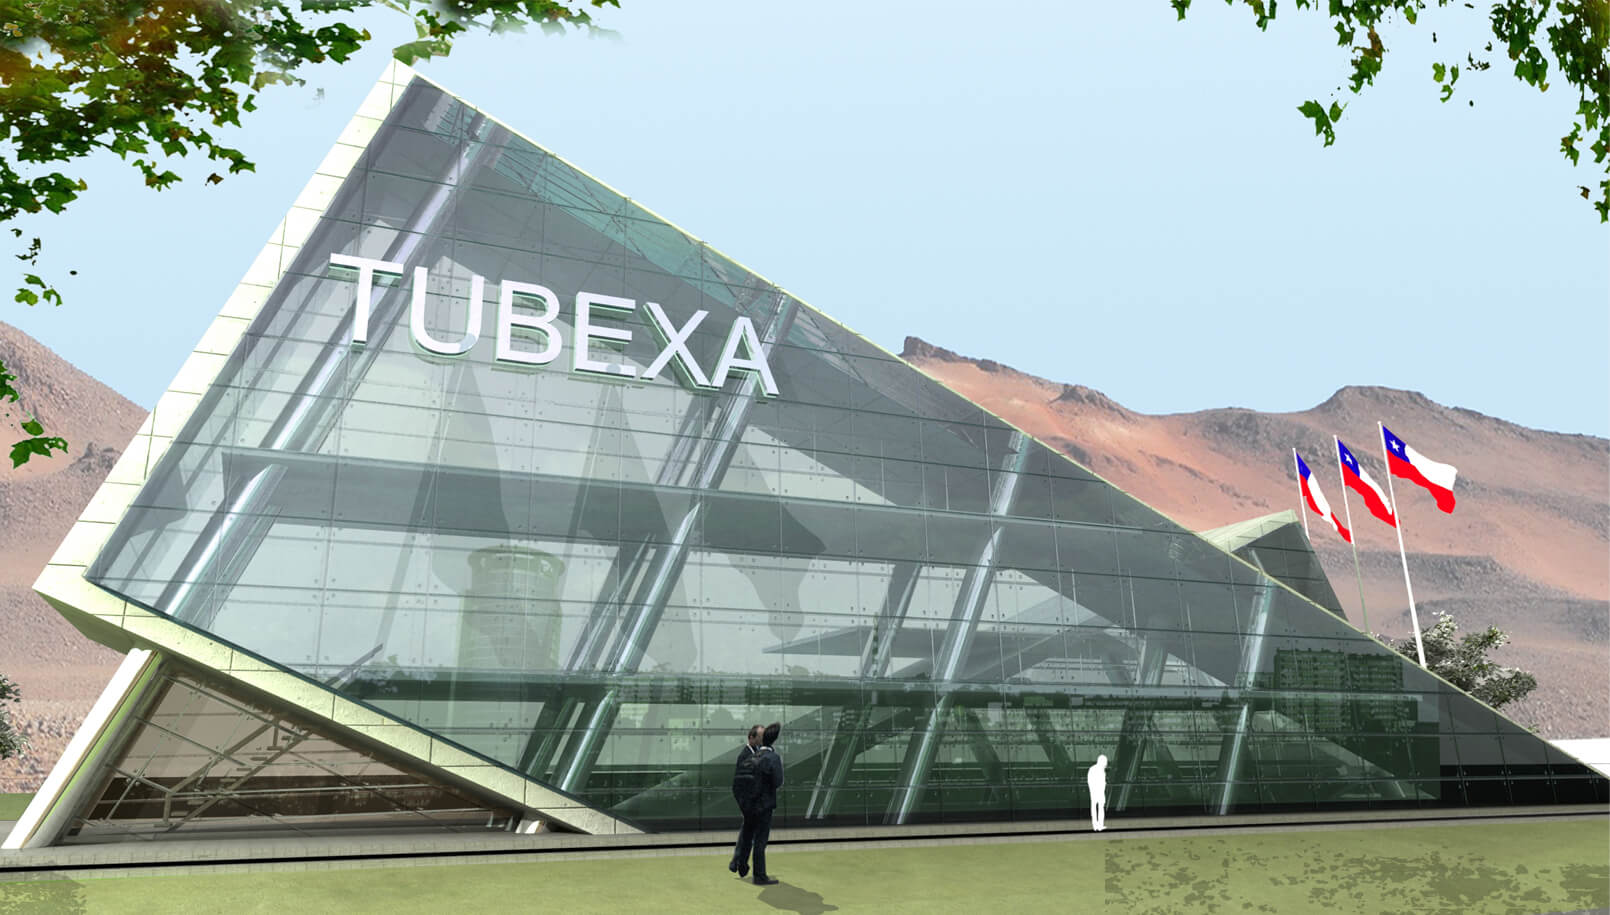 Design for Tubexa headquarter